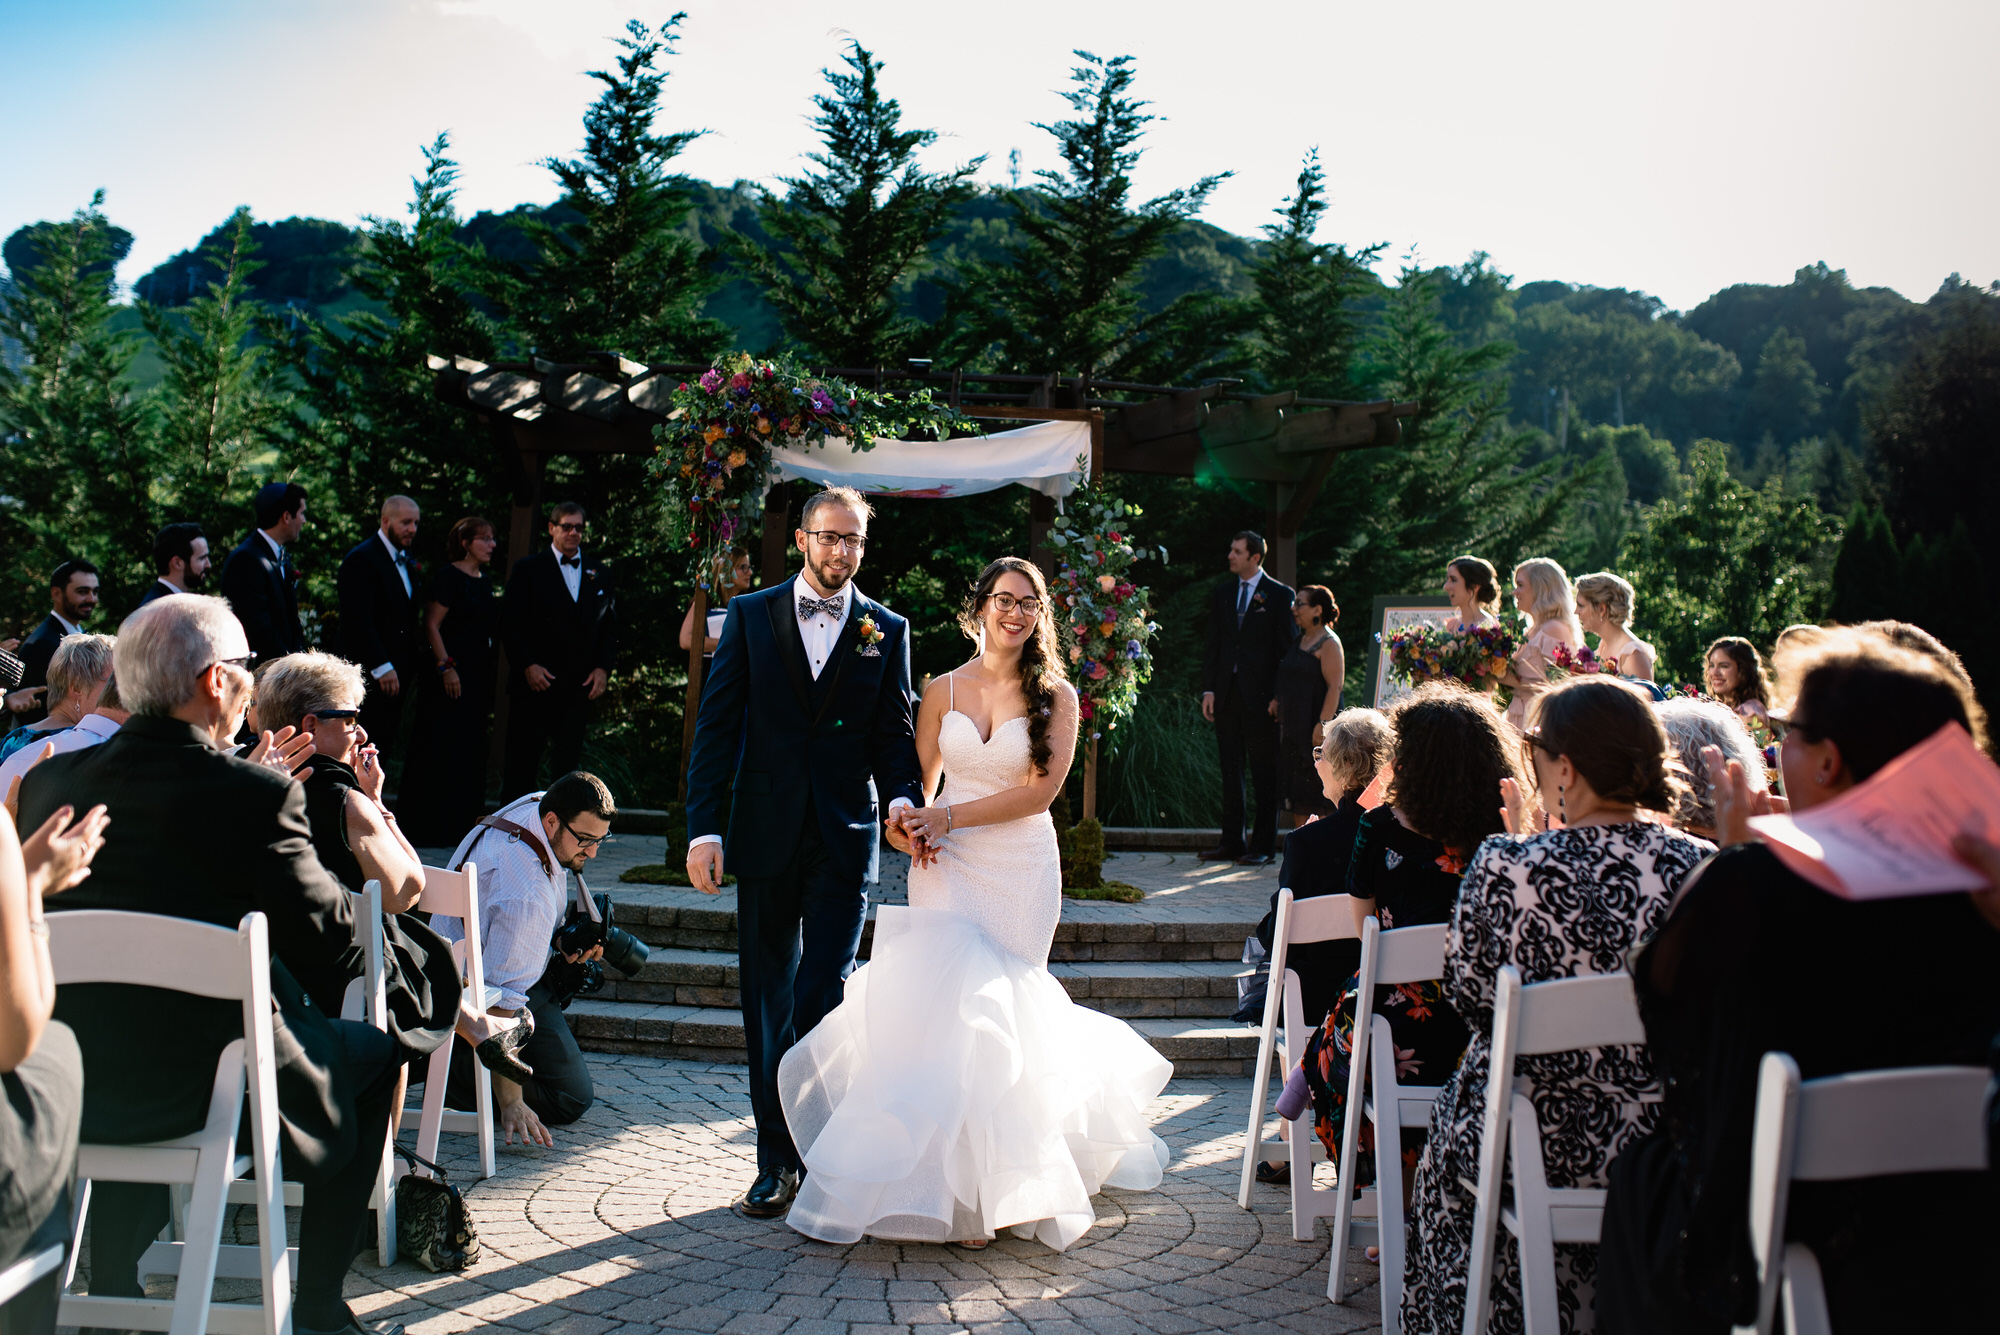 Bear_Creek_Mountain_Wedding_061.jpg